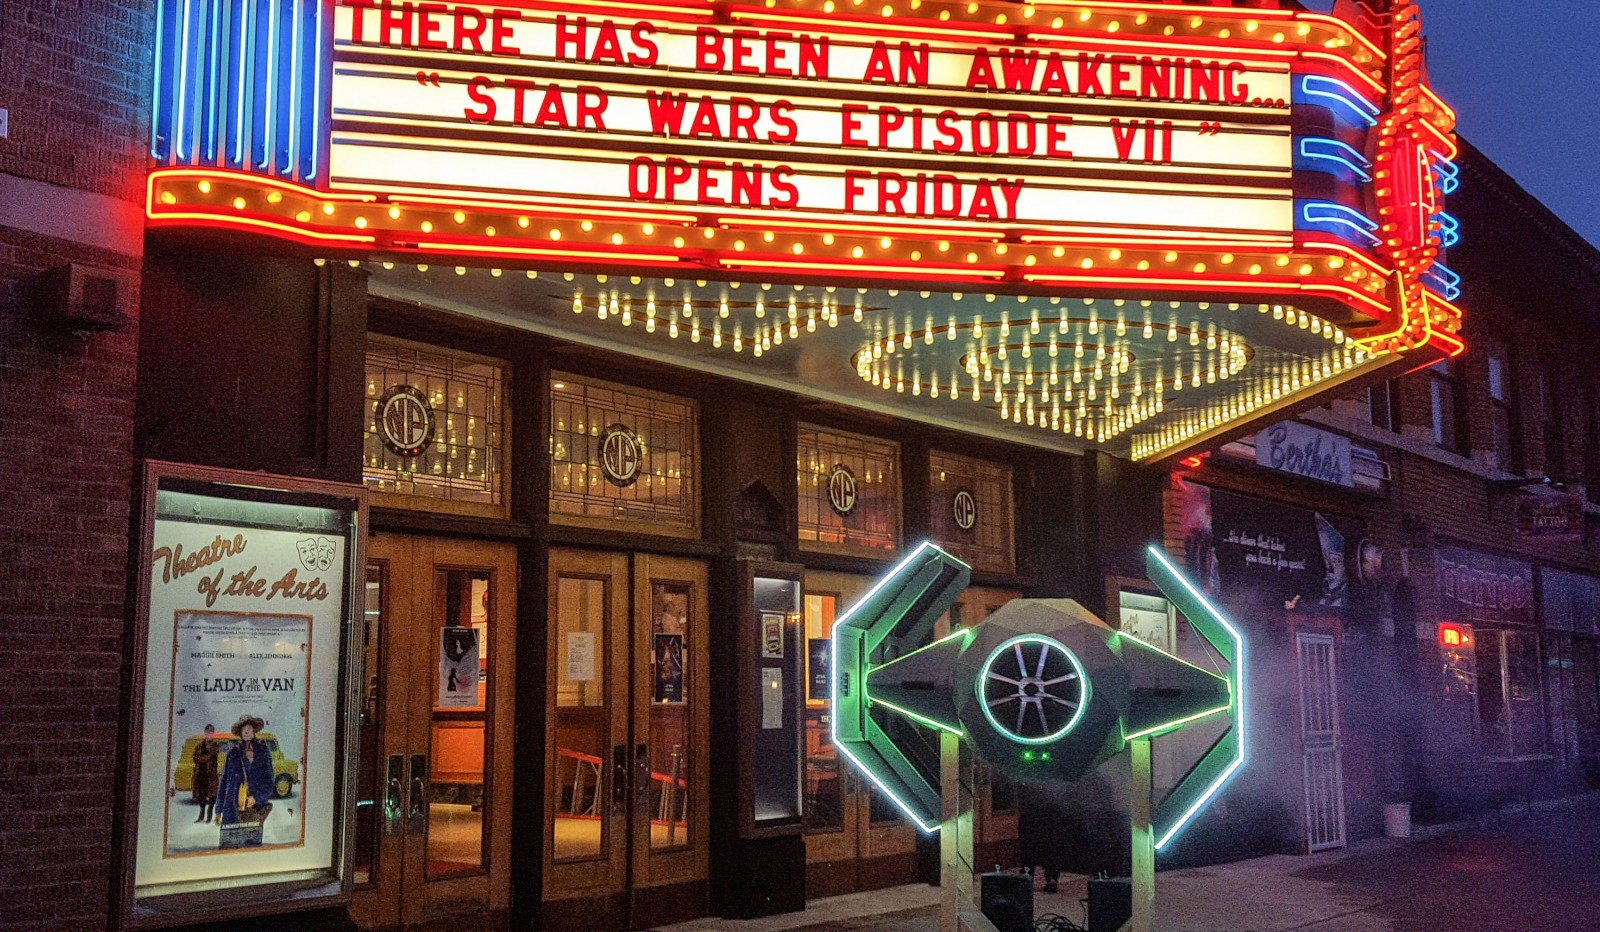 A replica TIE-fighter will be in the lobby of the North Park Theatre for showings of 'Star Wars Episode VII: The Force Awakens.' (North Park Theatre)